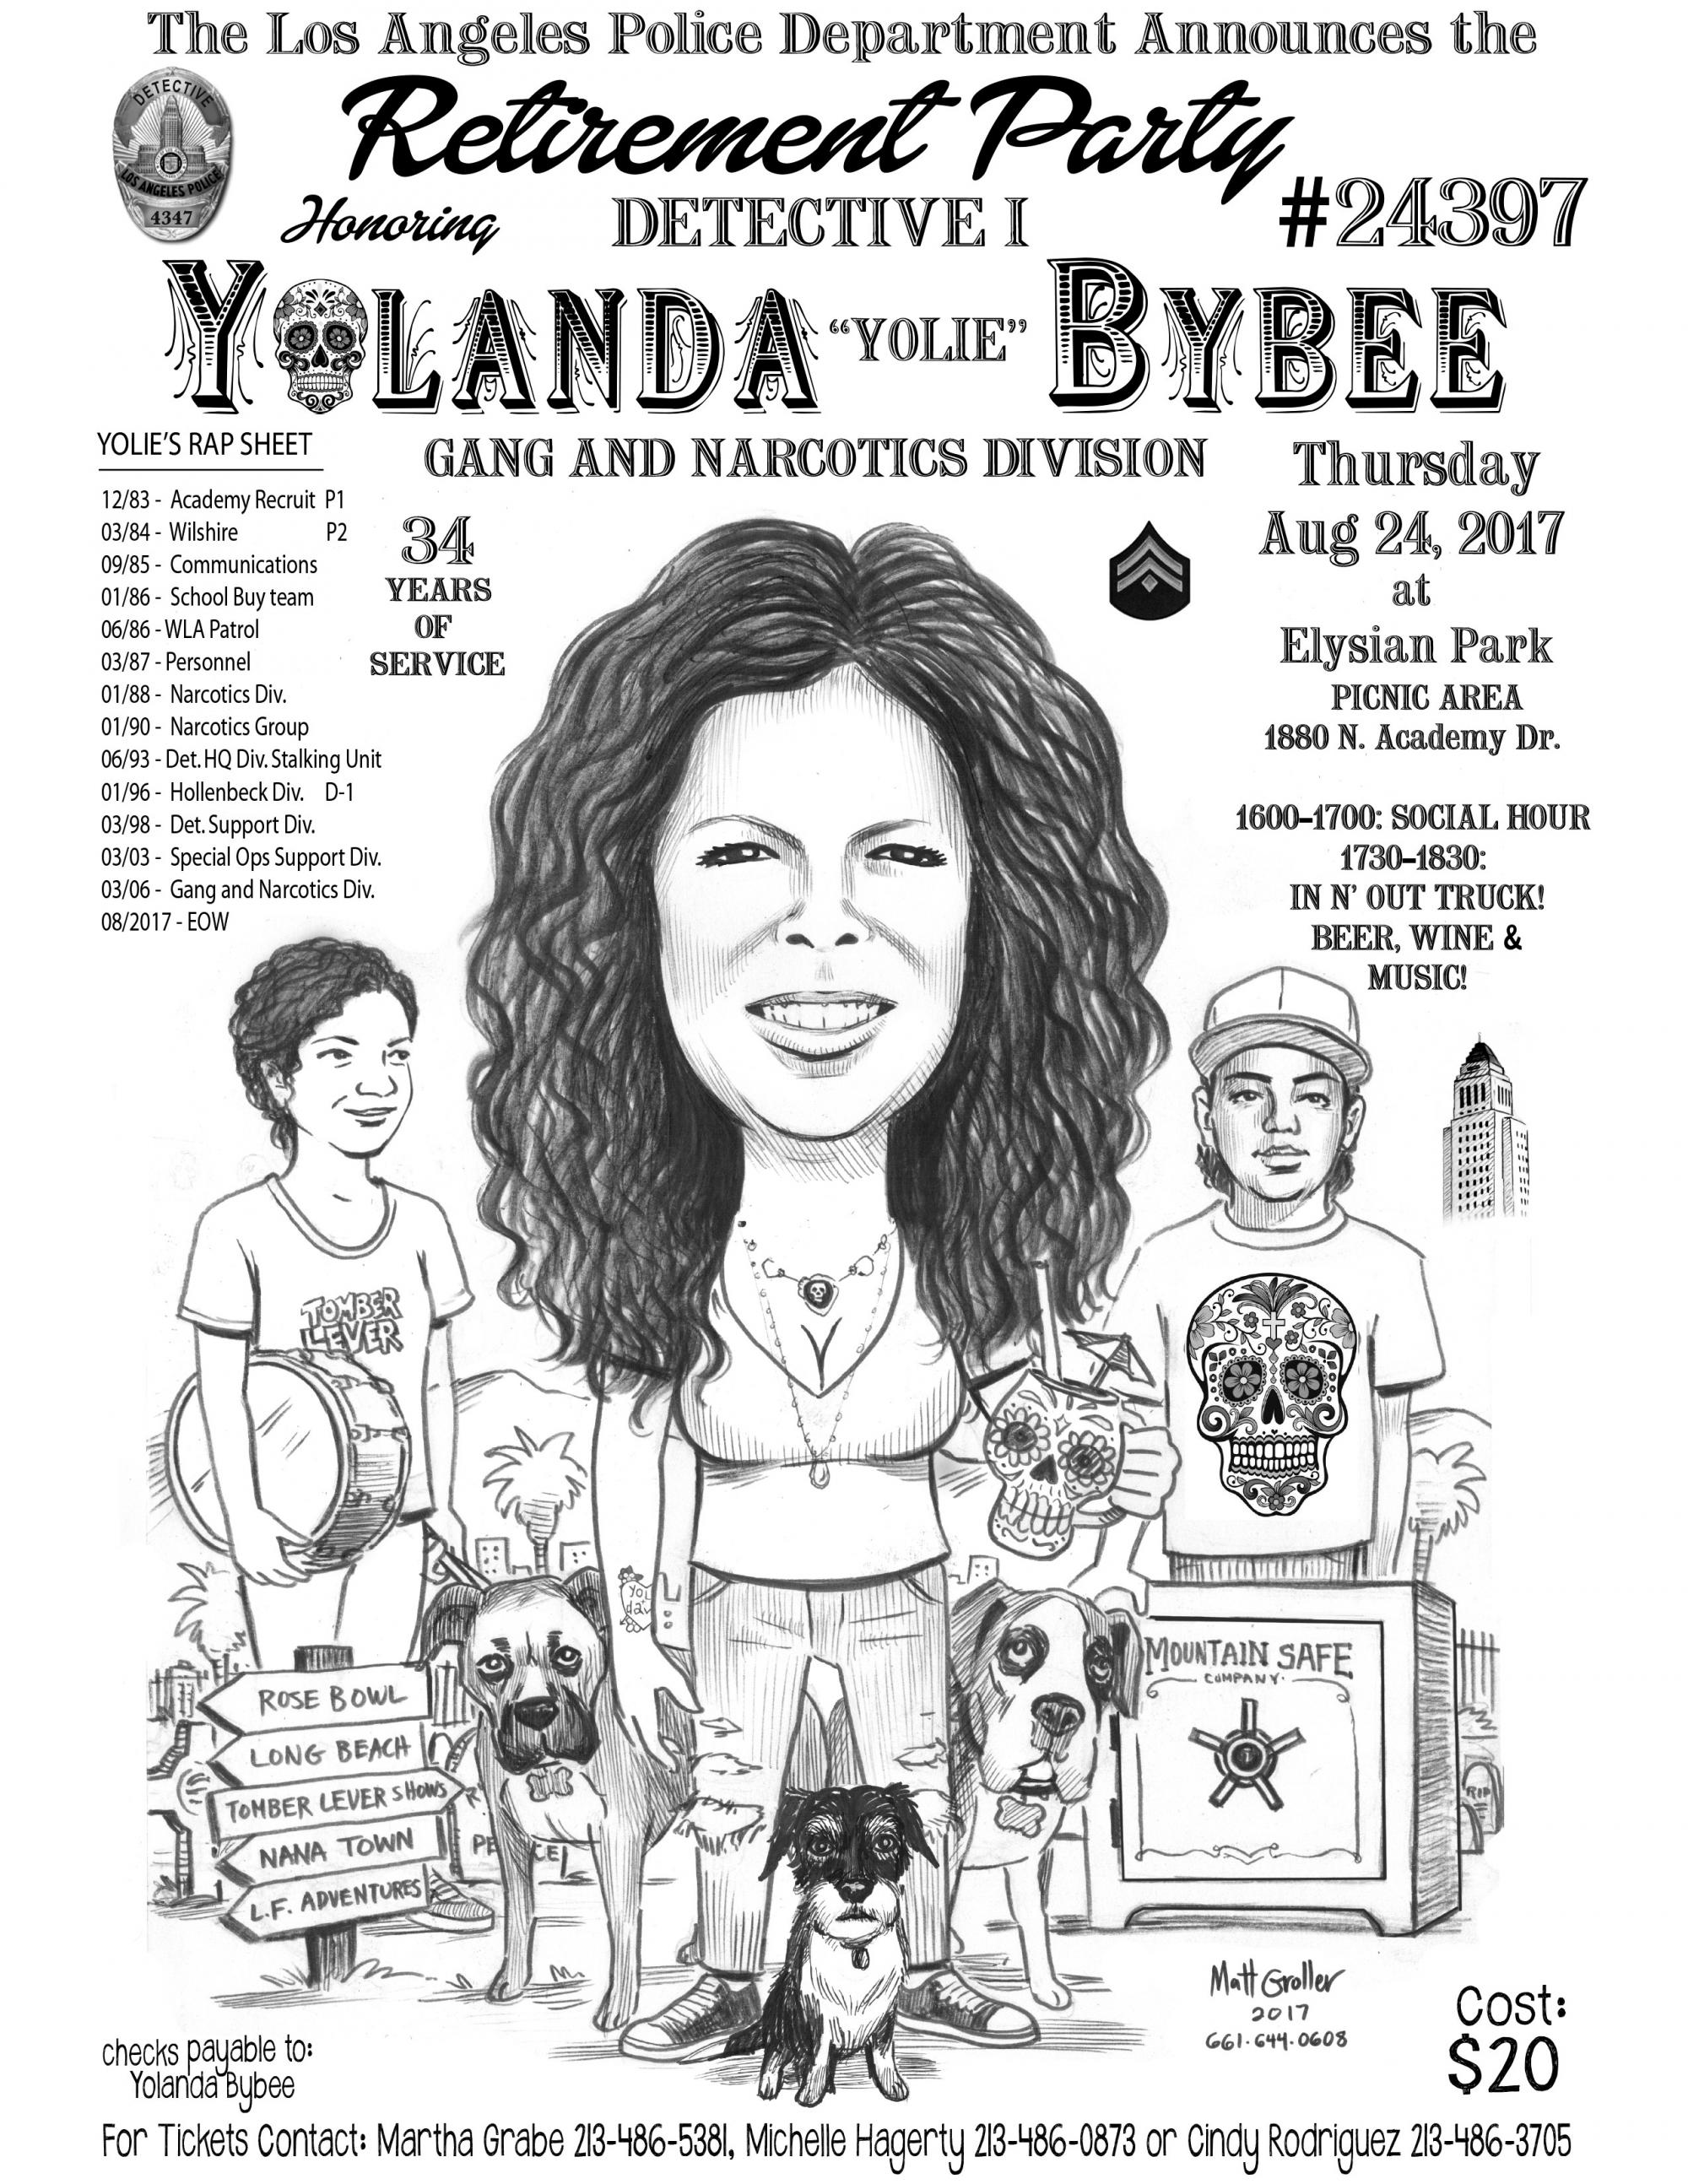 Yolanda Bybee Retirement Party | LAPPL - Los Angeles Police